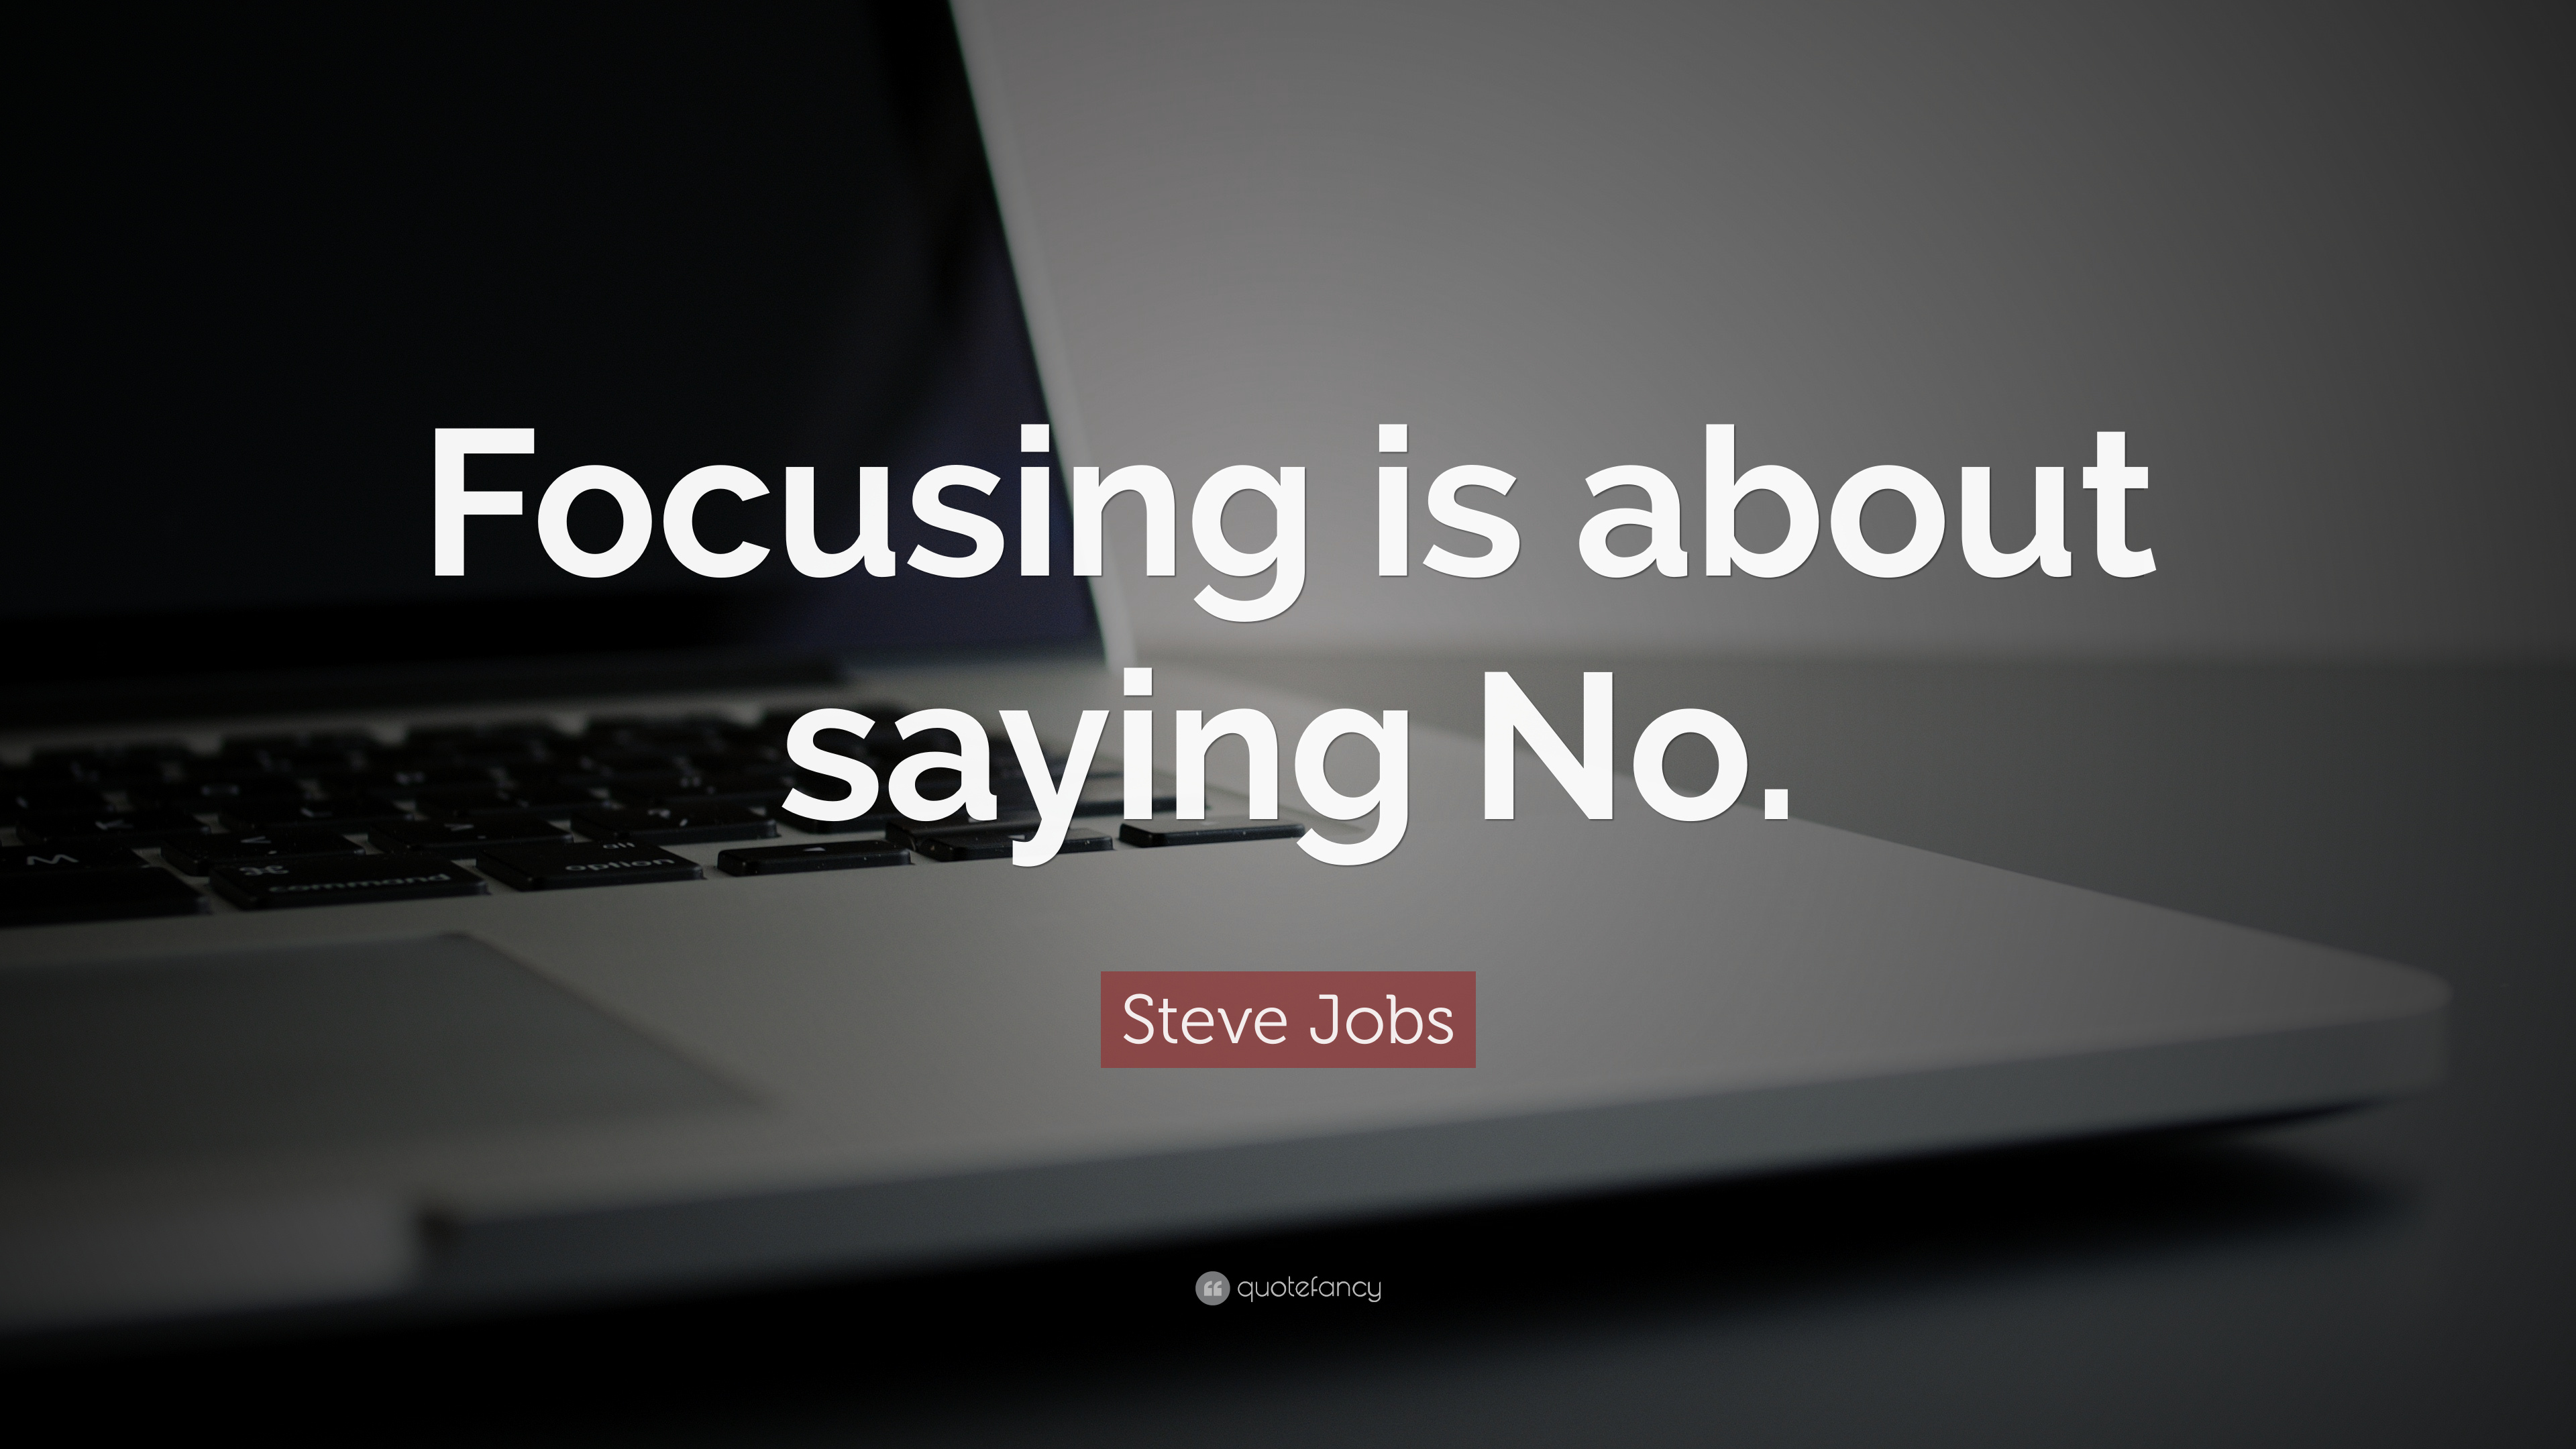 Steve Jobs Quote - Quote Hd Wallpaper For Laptop Full Screen - HD Wallpaper